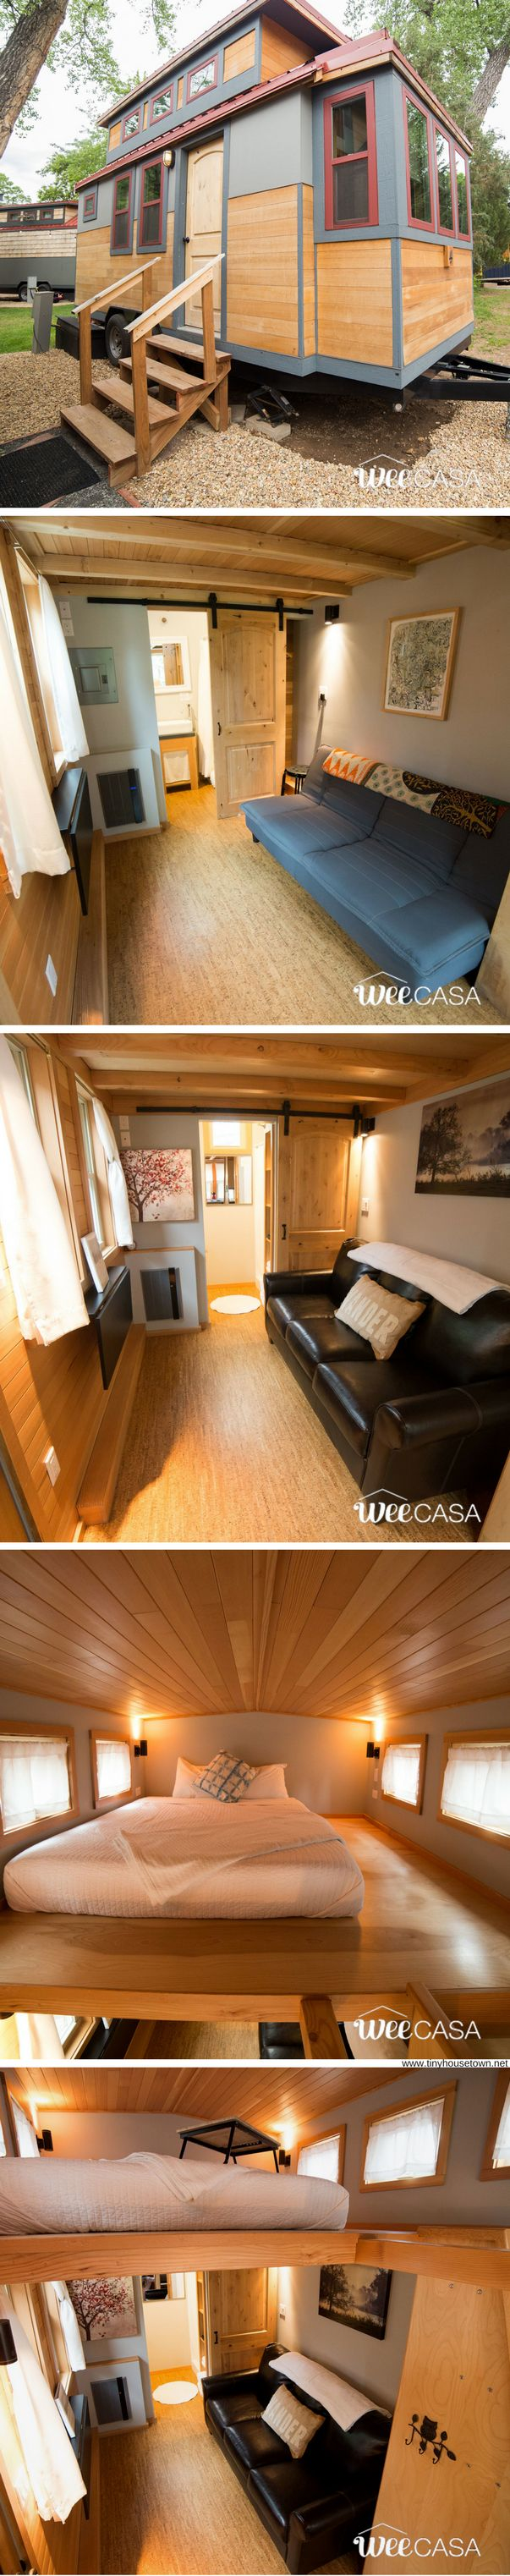 The Golden Aspen: a 170-sq-ft tiny house available for rent at the WeeCasa Tiny House Resort!